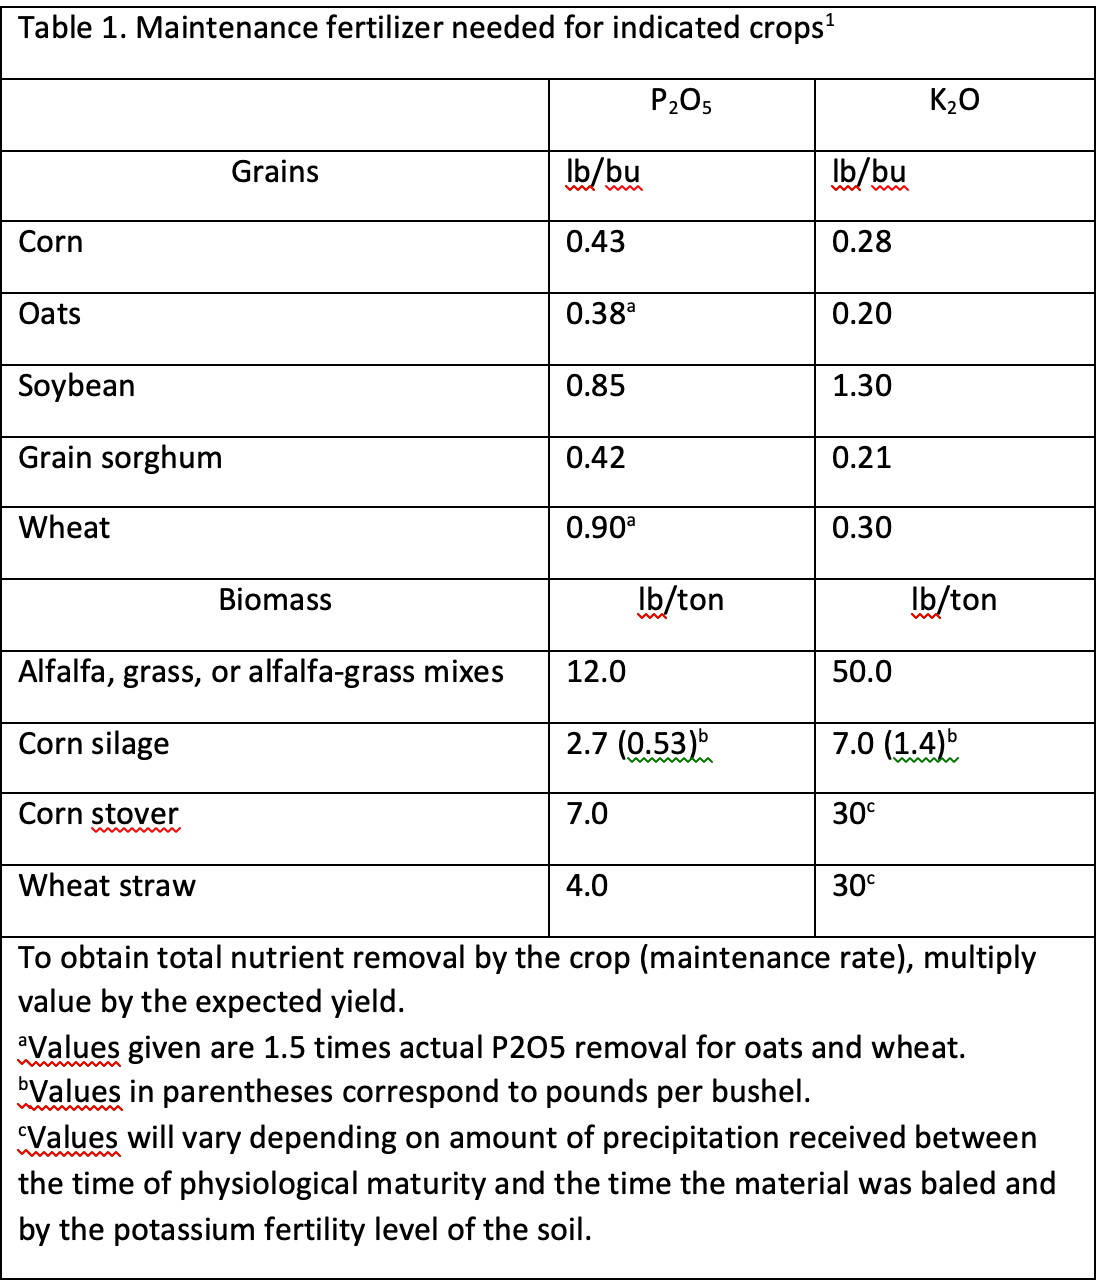 Table 1. Nutrient removal rates (pounds/bushel) of the three Michigan grain crops